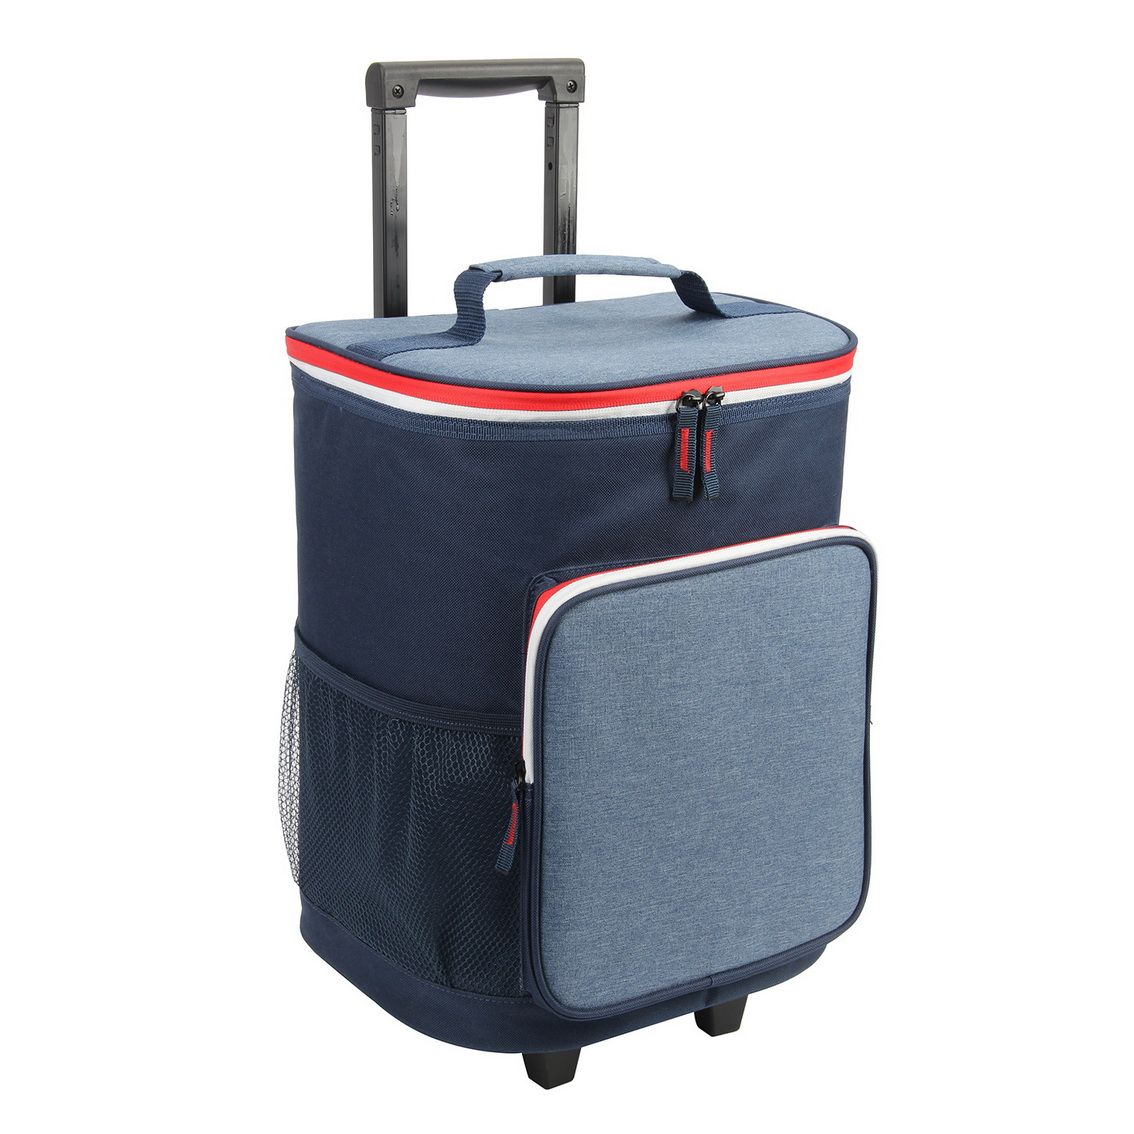 2021 Newest Style Polyester Shopping Trolley Picnic Cooler Bag with Wheels